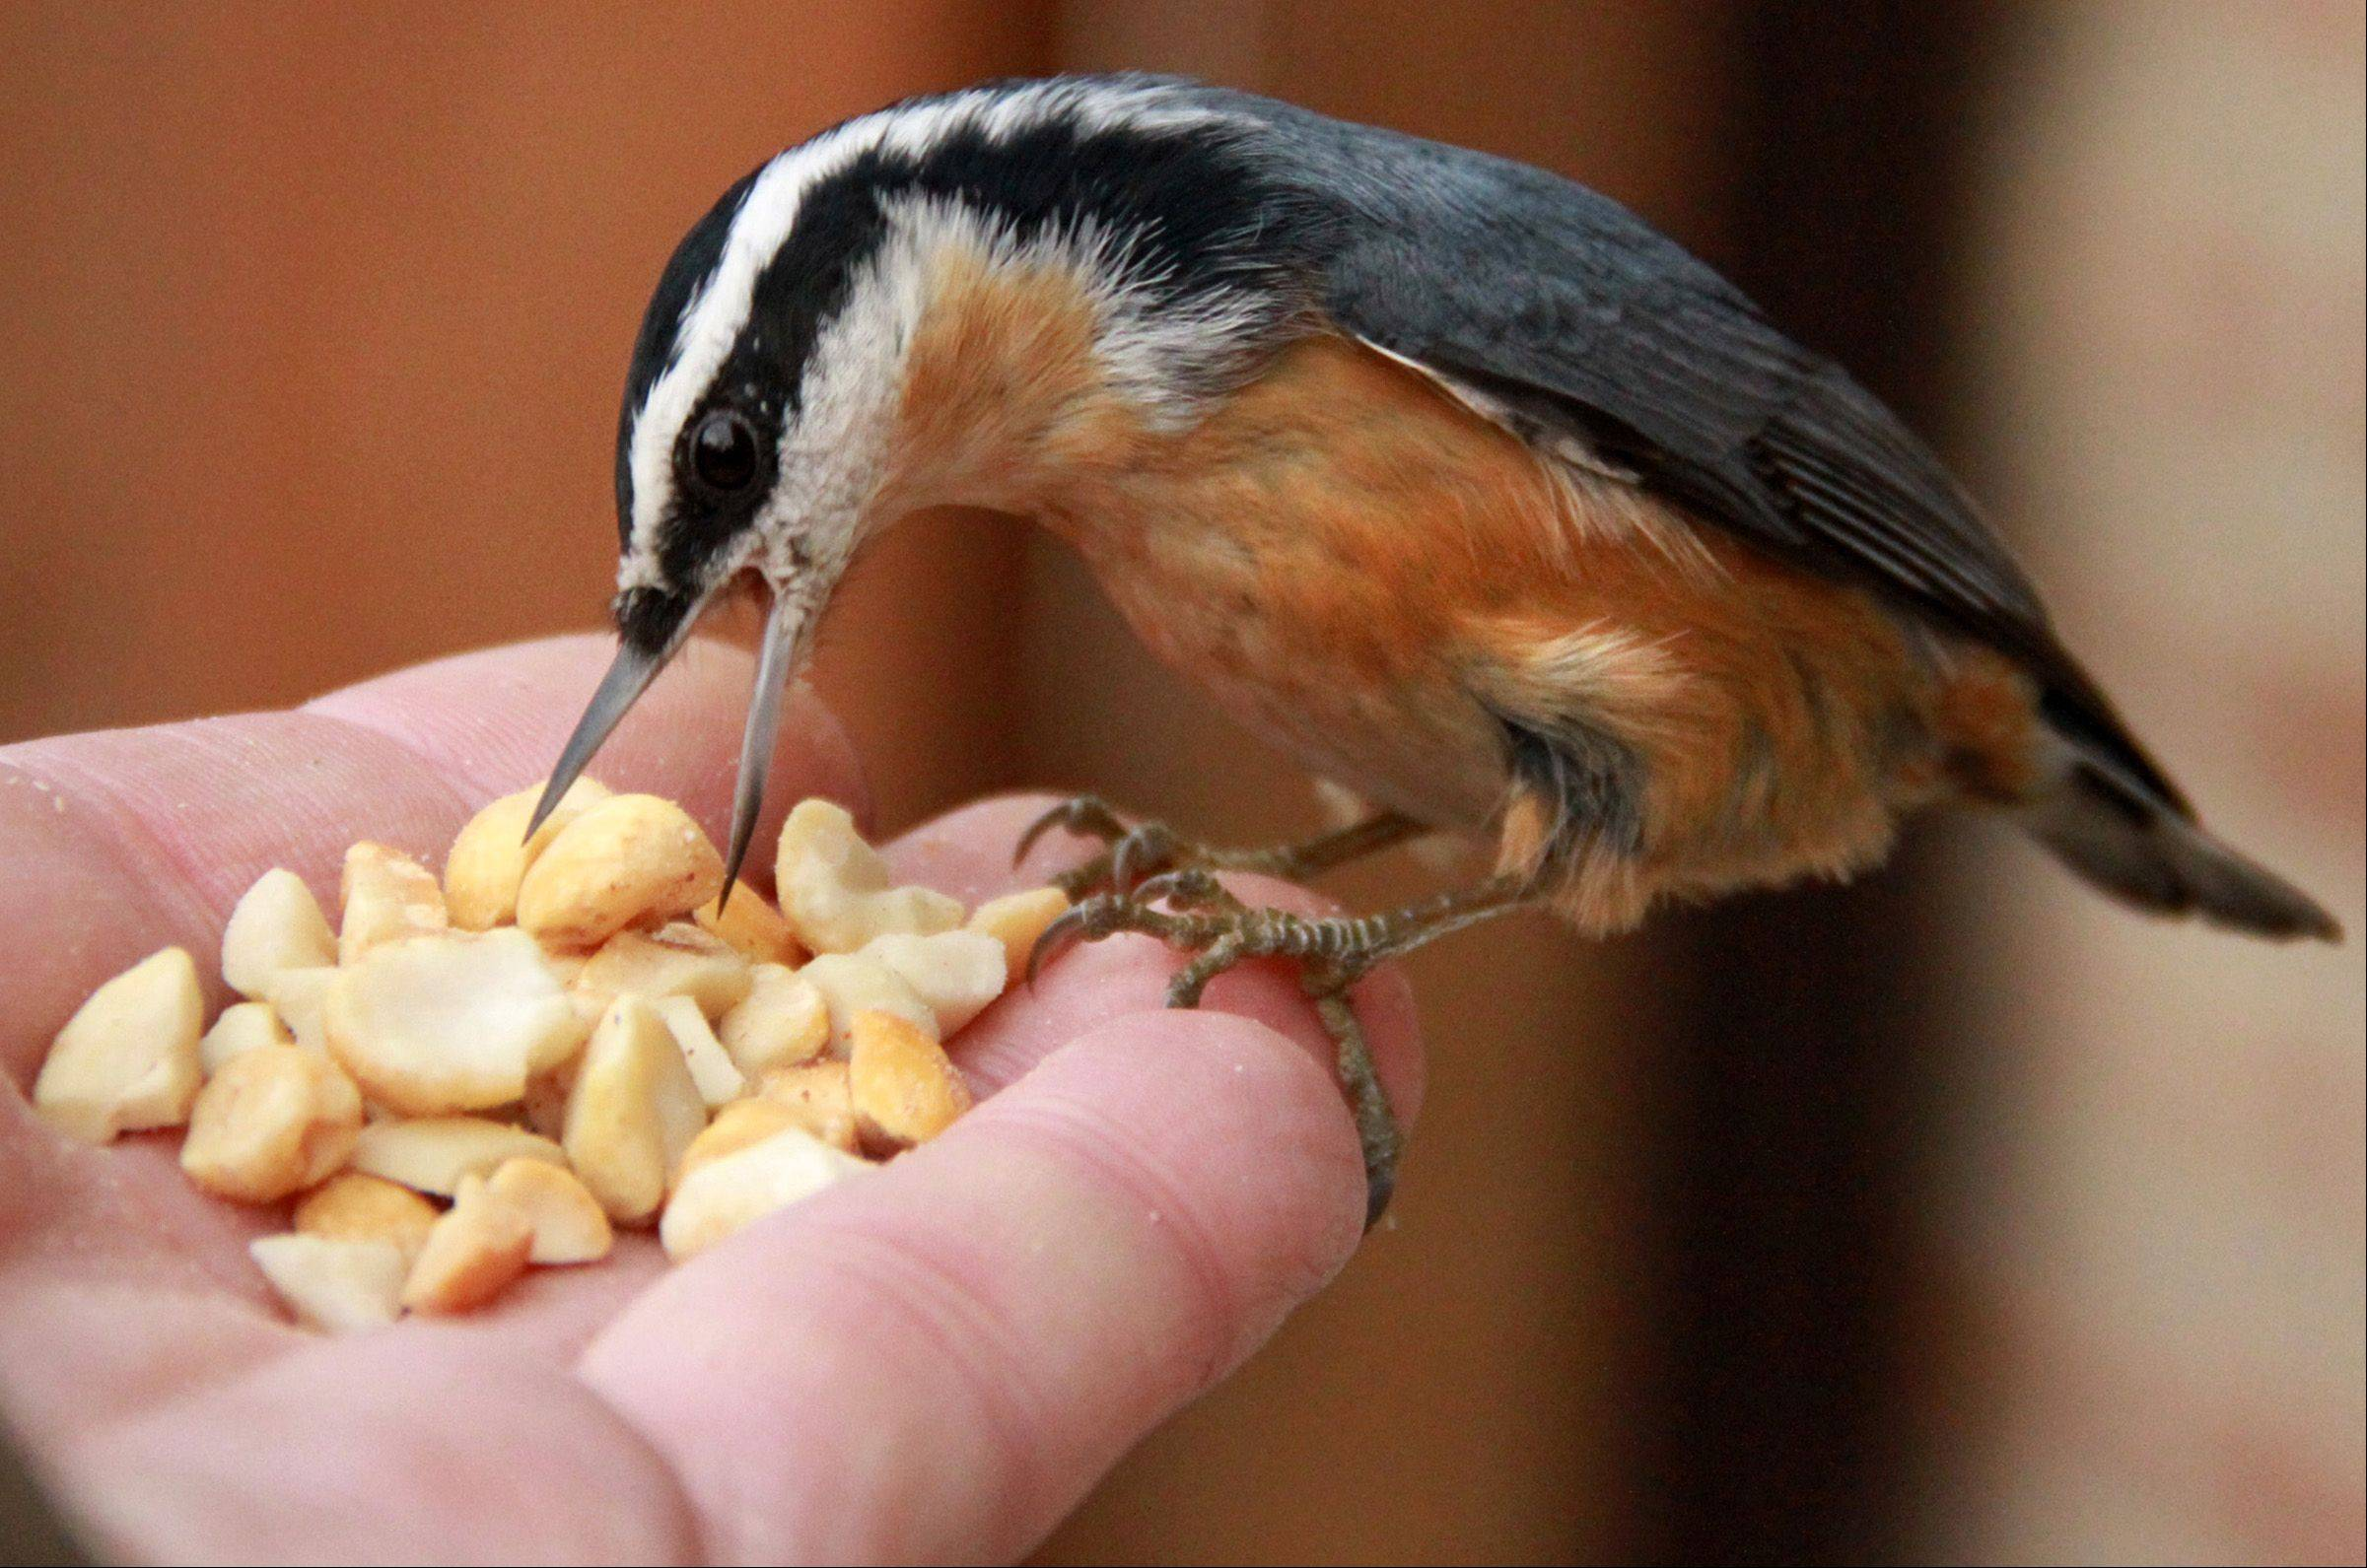 Daily Herald photographer George LeClaire entices a red-breasted nuthatch to land on his hand using peanuts, the 4-inch bird's favorite food on Nov. 15 in Glenview. Postings on the Illinois Audubon Society Facebook page show the bird is in the area in large numbers for the first time since 2007 and 1989 migrations.